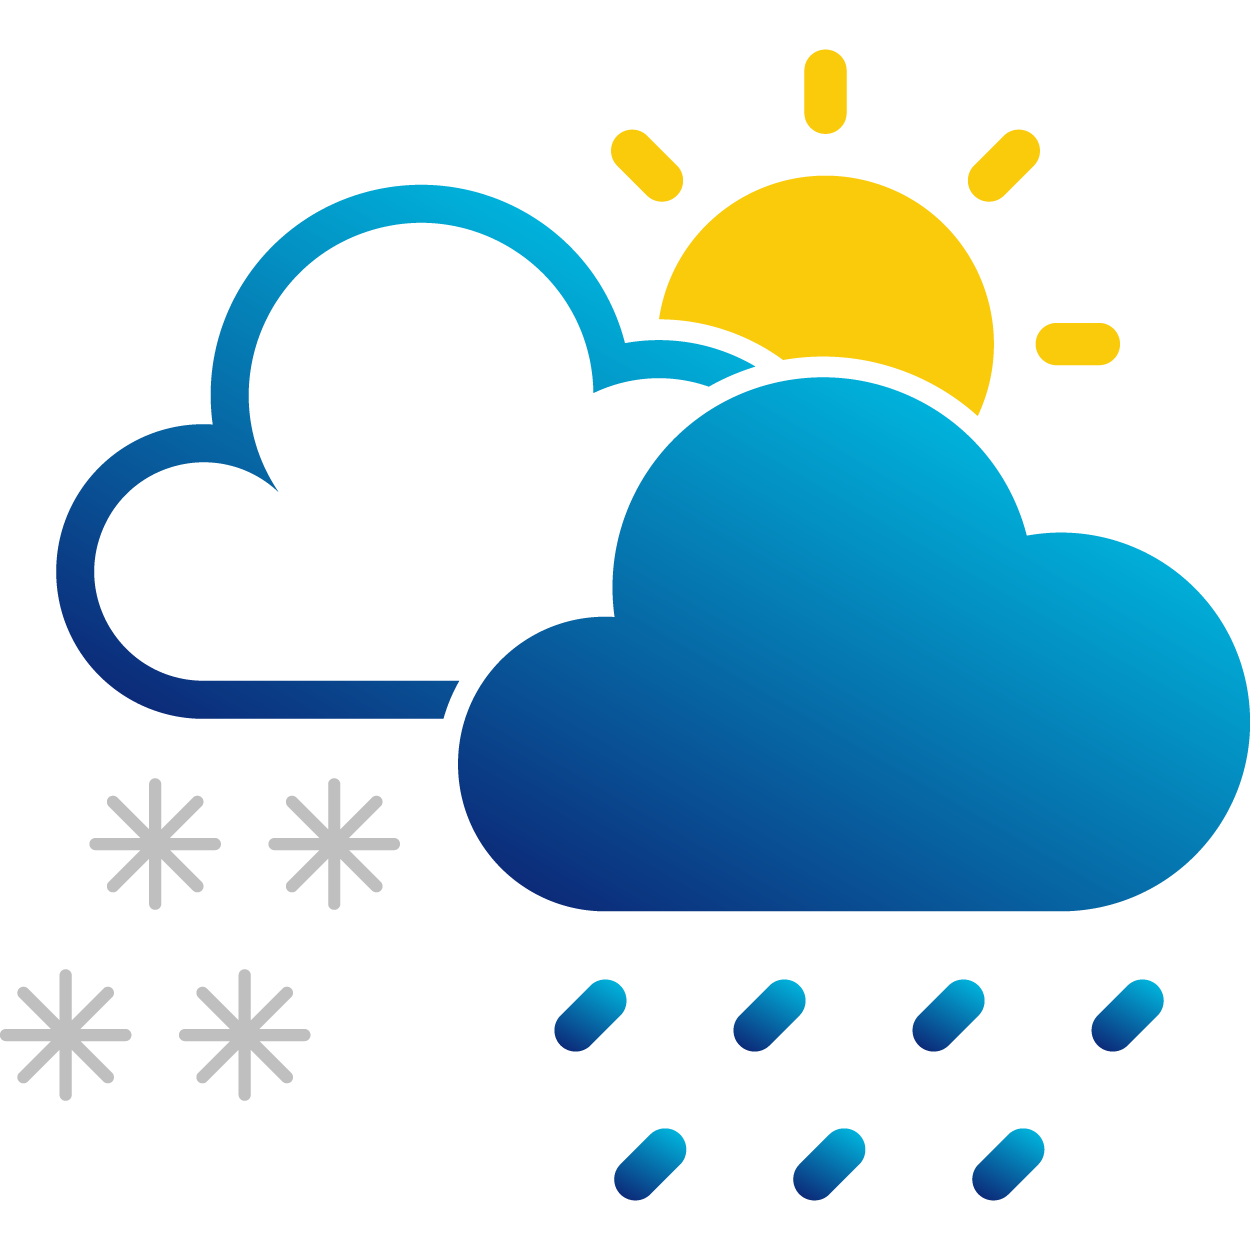 meteorology_products_icon